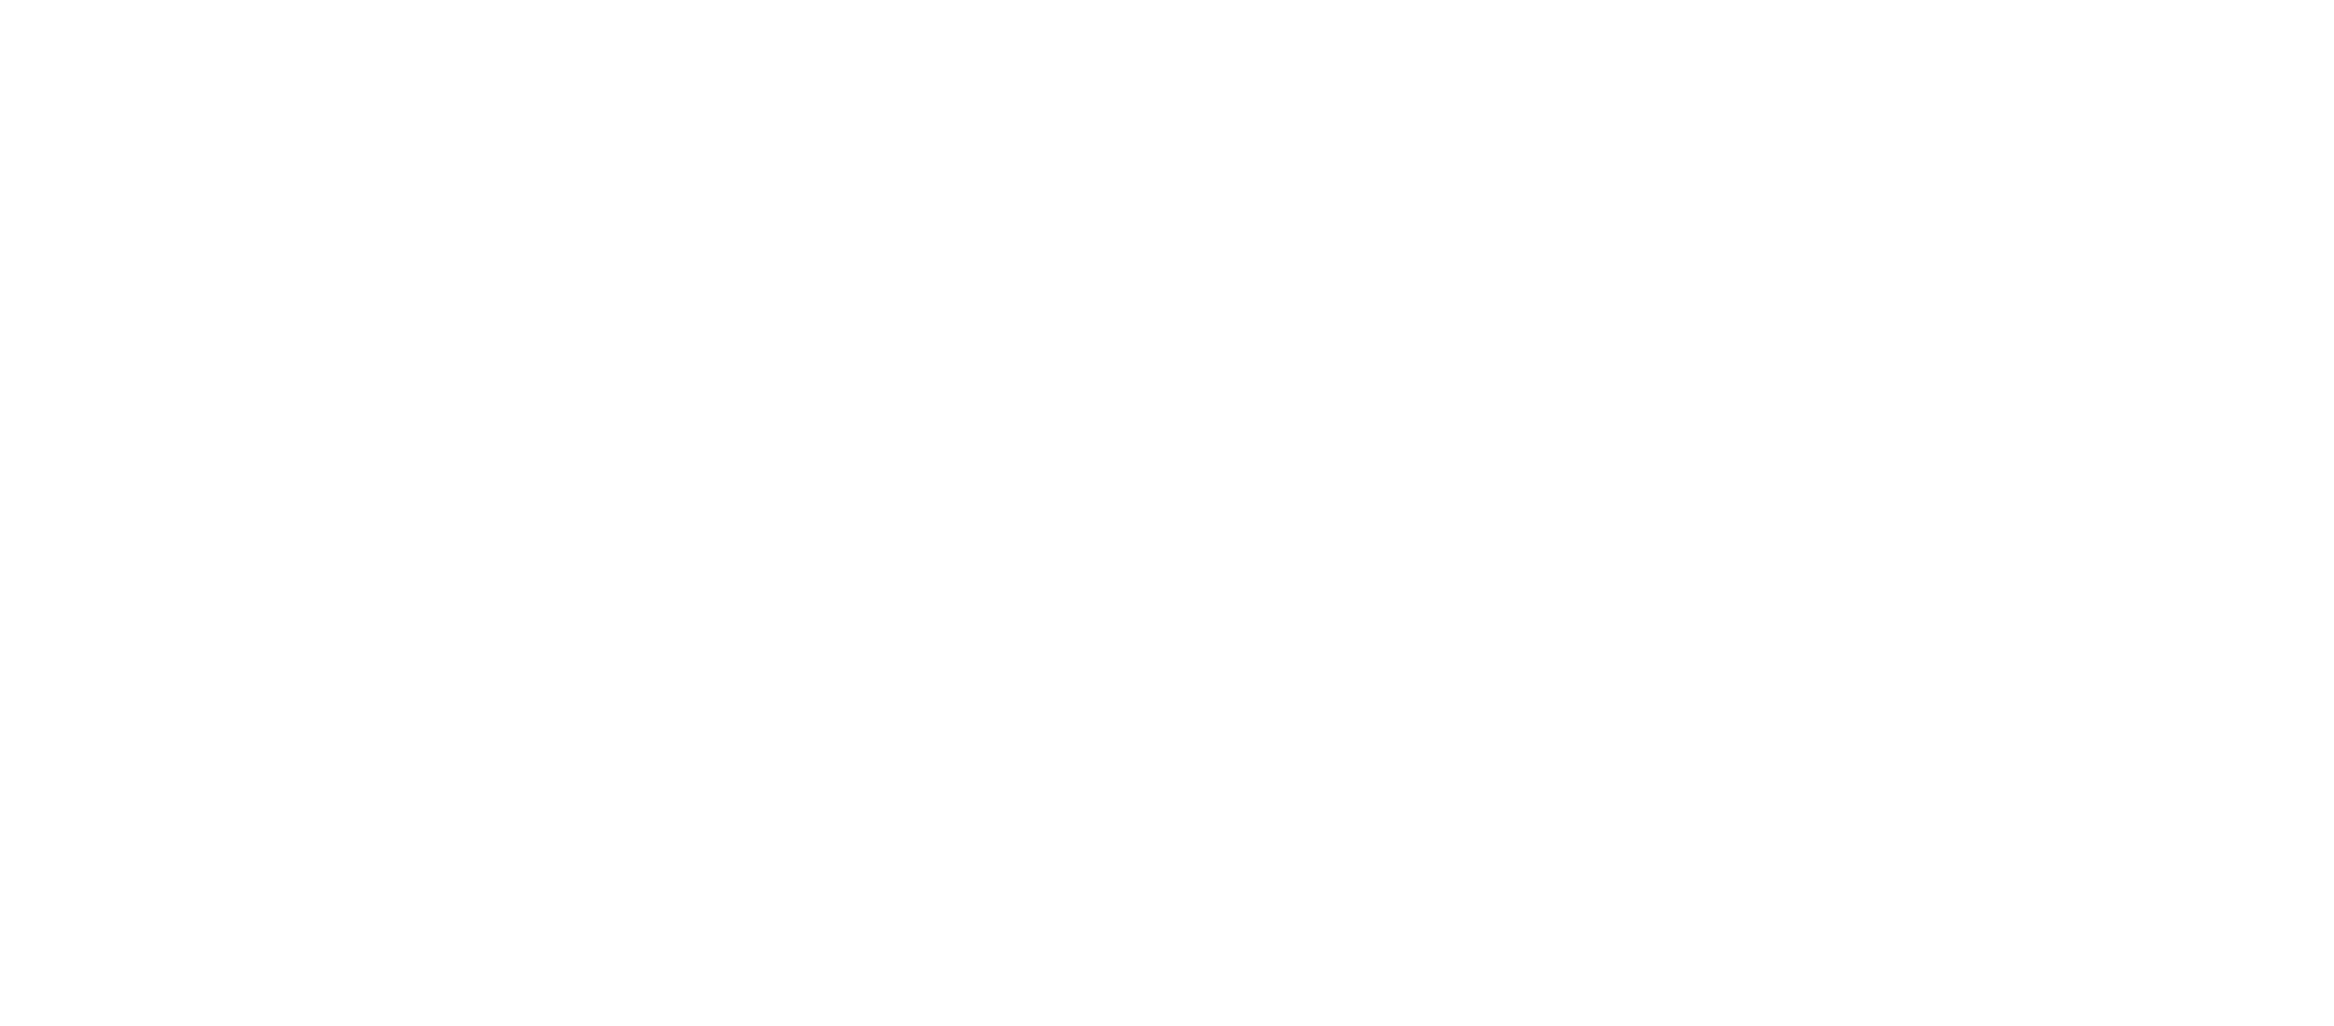 Trailer-01.png